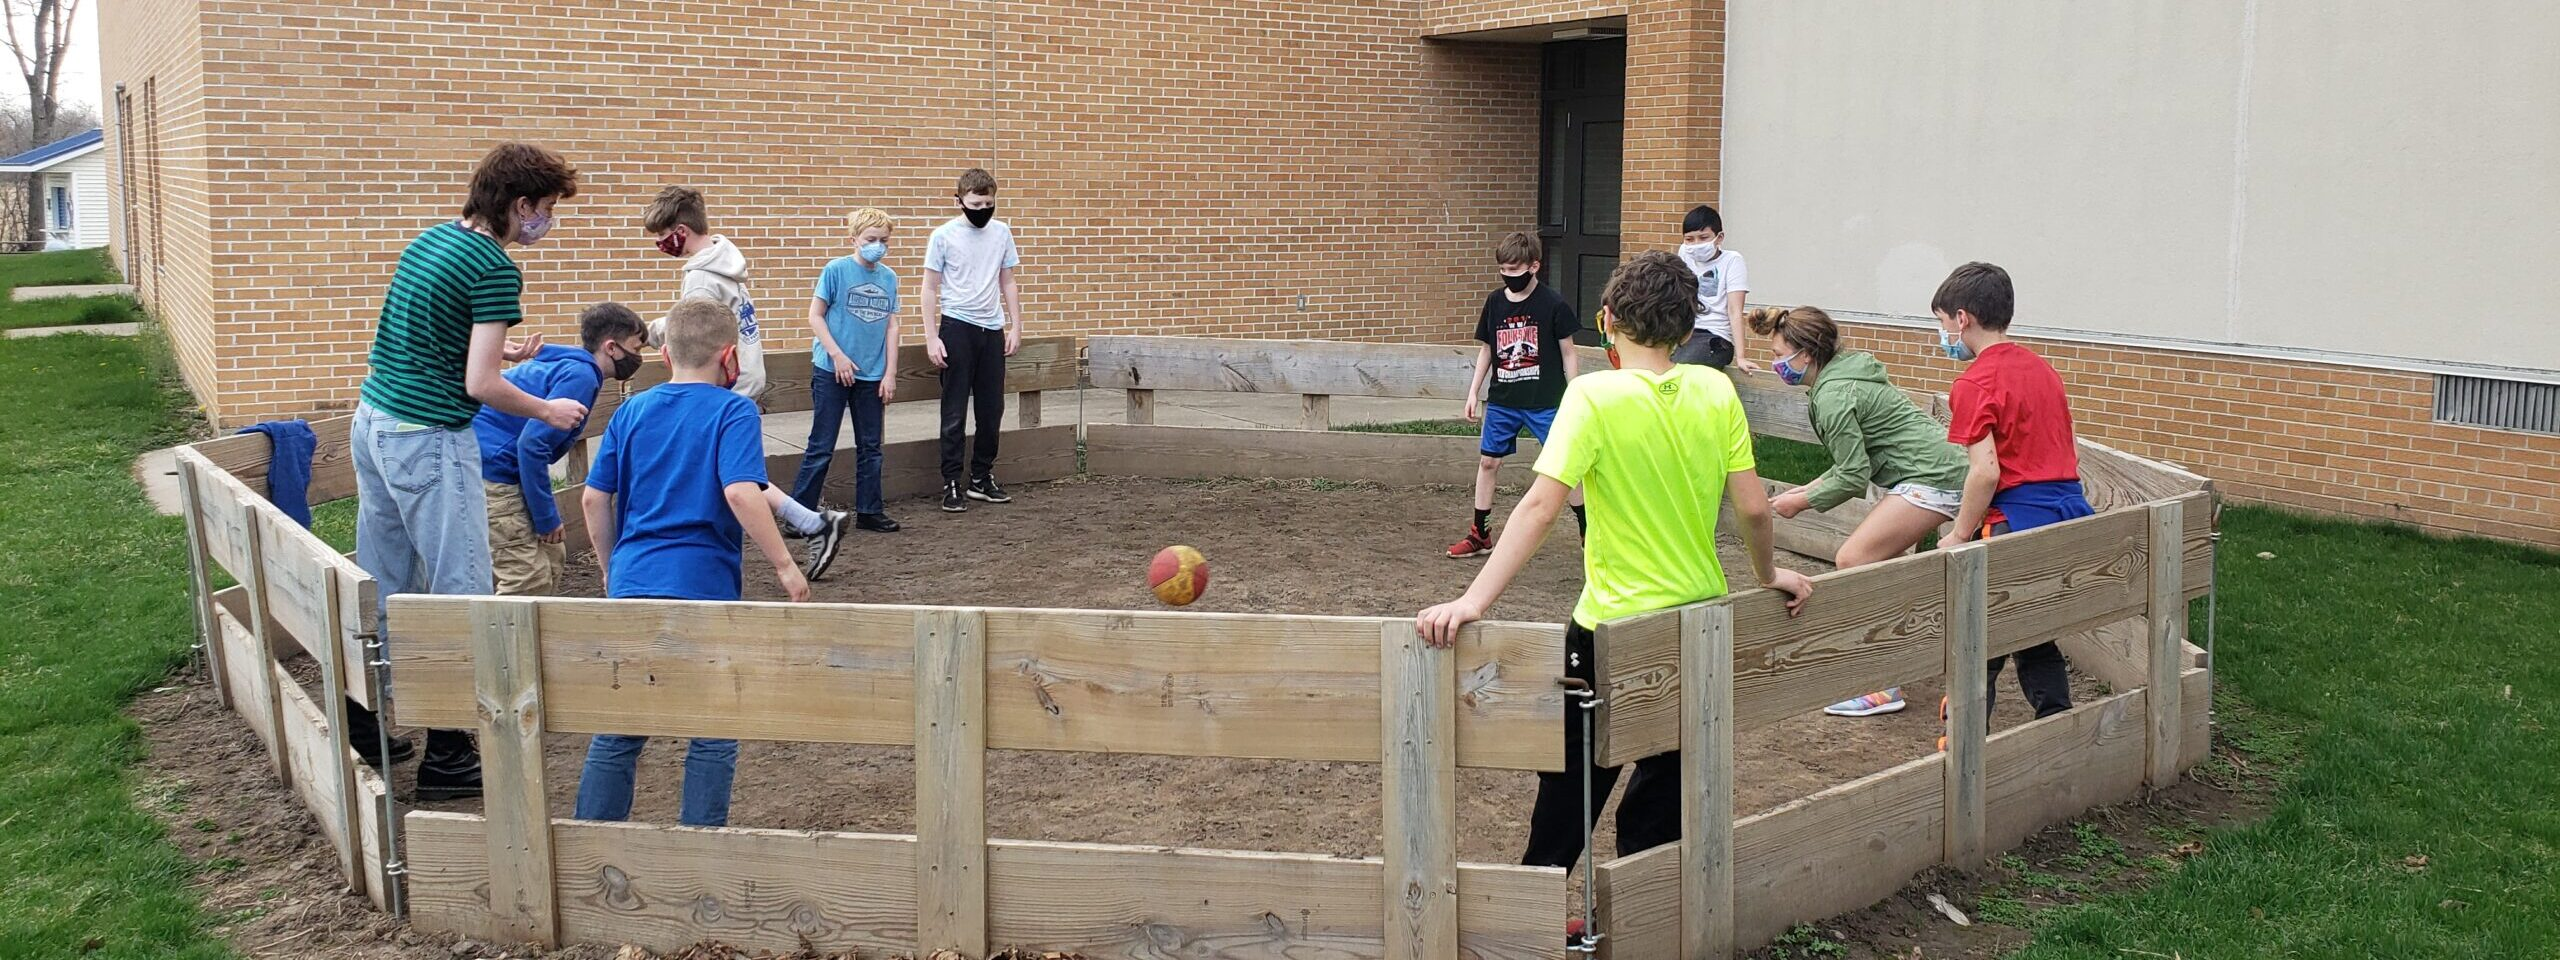 kids playing with a ball in the arena